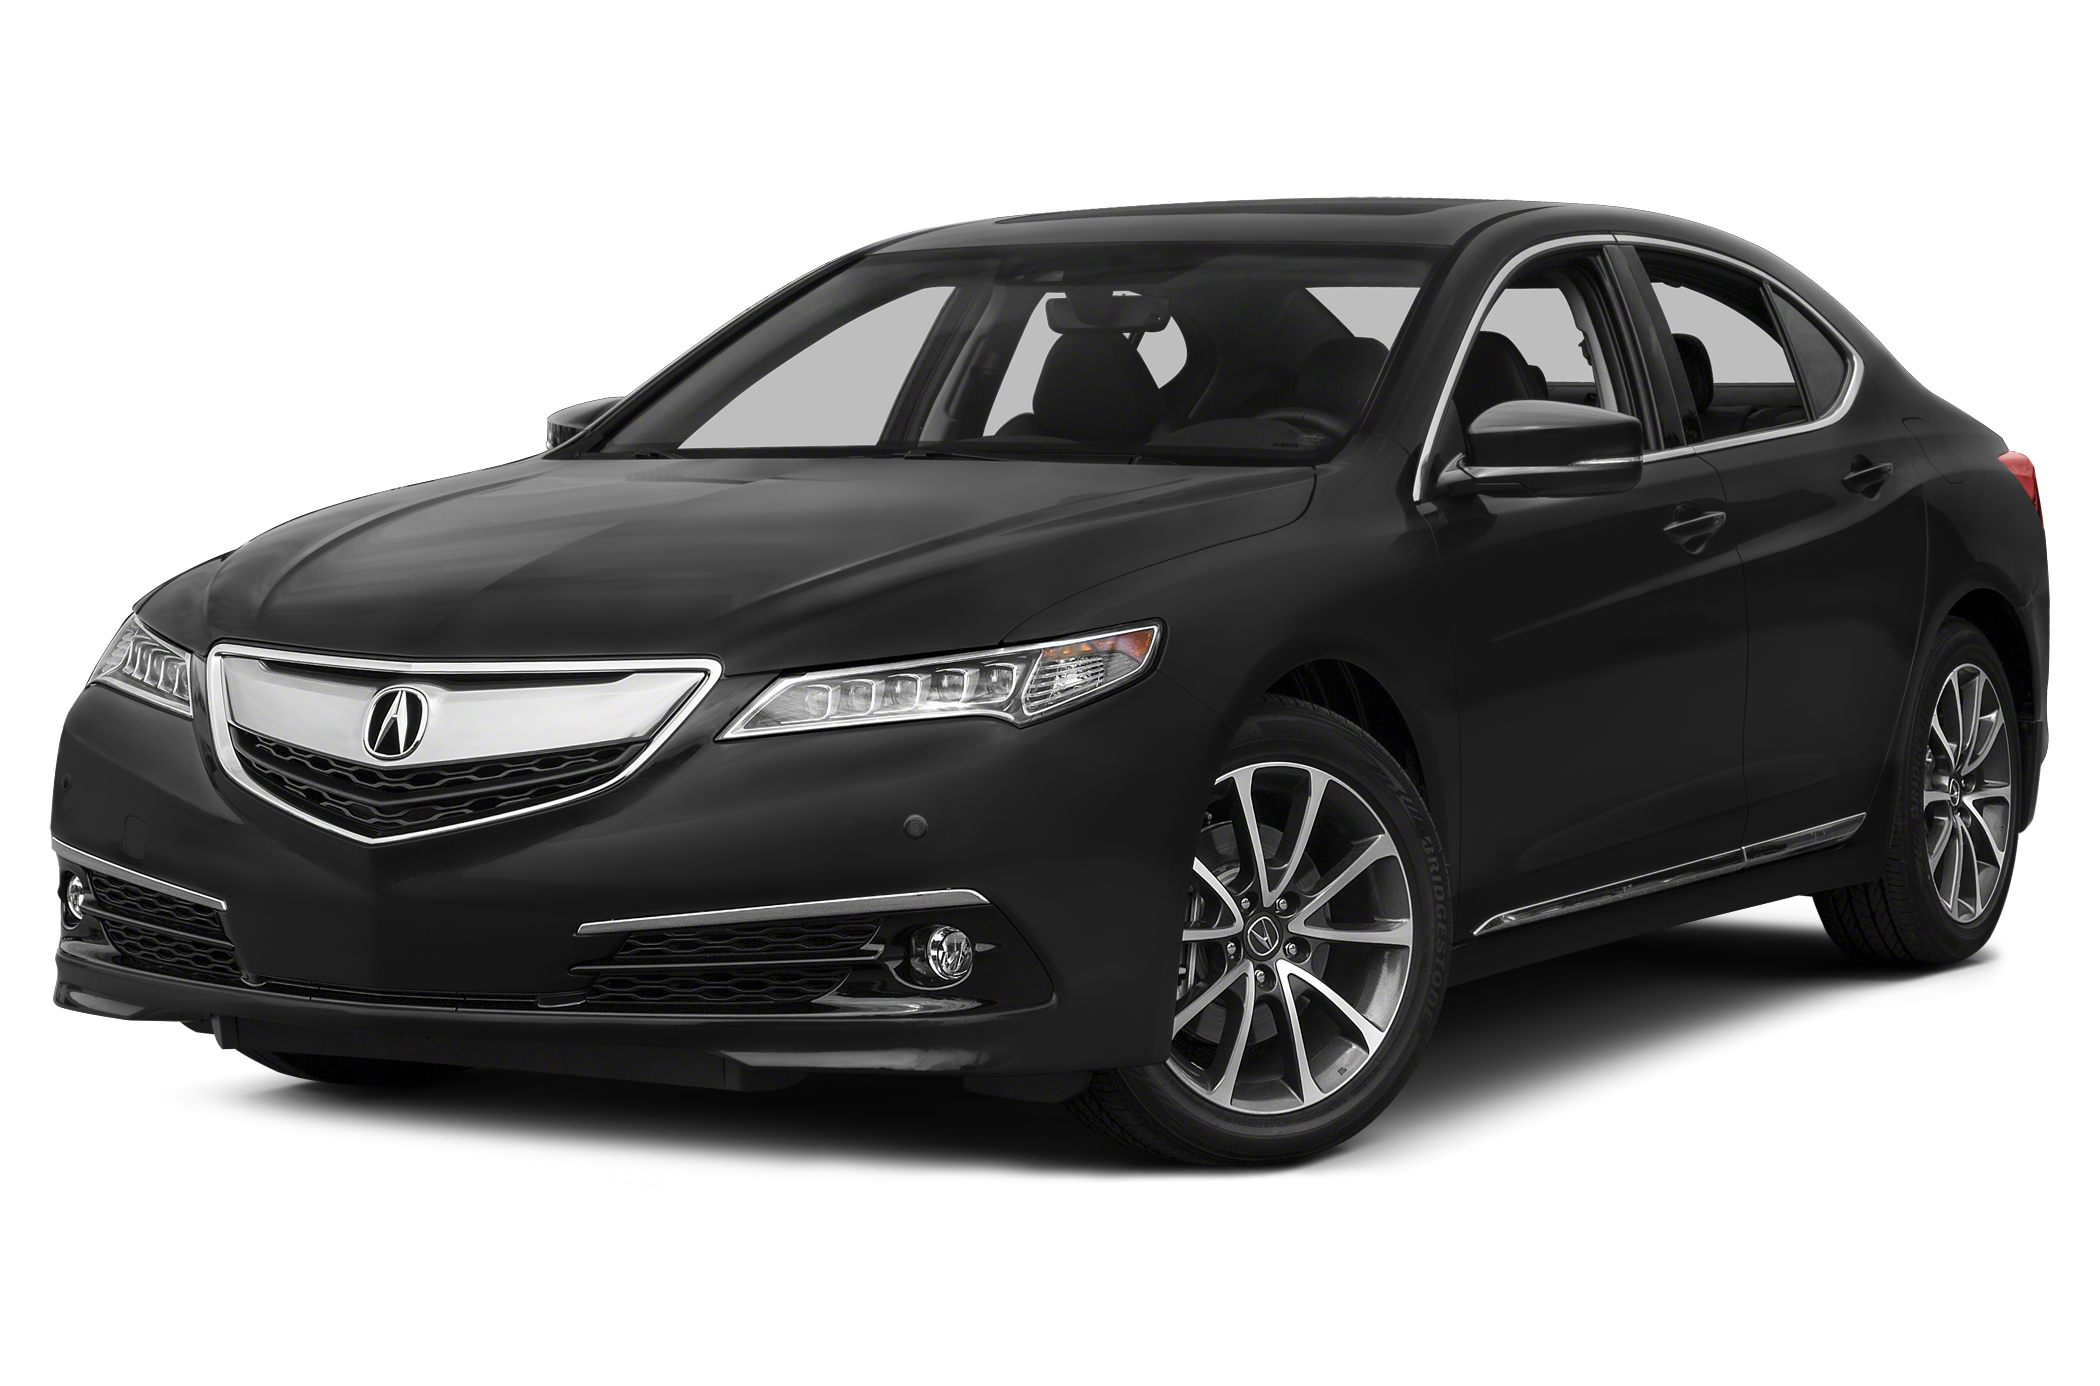 2015 Acura TLX V6 Advance Sedan for sale in Peoria for $45,720 with 0 miles